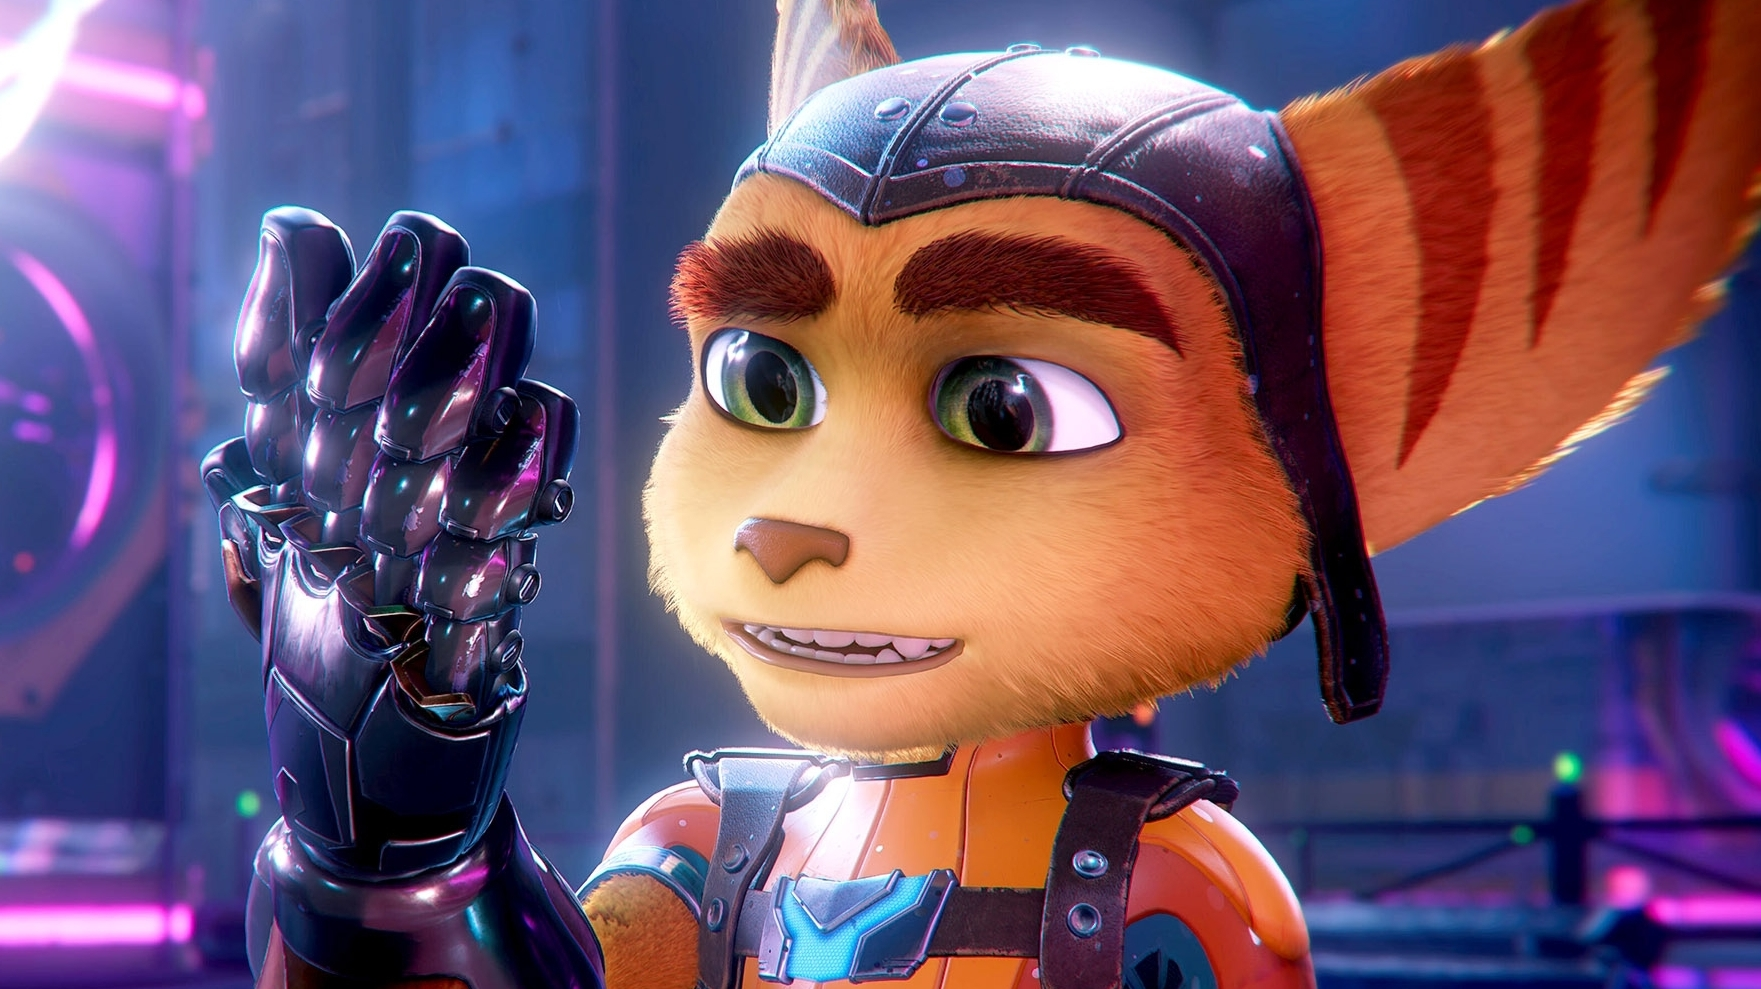 Ratchet & Clank: Rift Apart on PS5: that's why we need next-gen exclusives - technical analysis